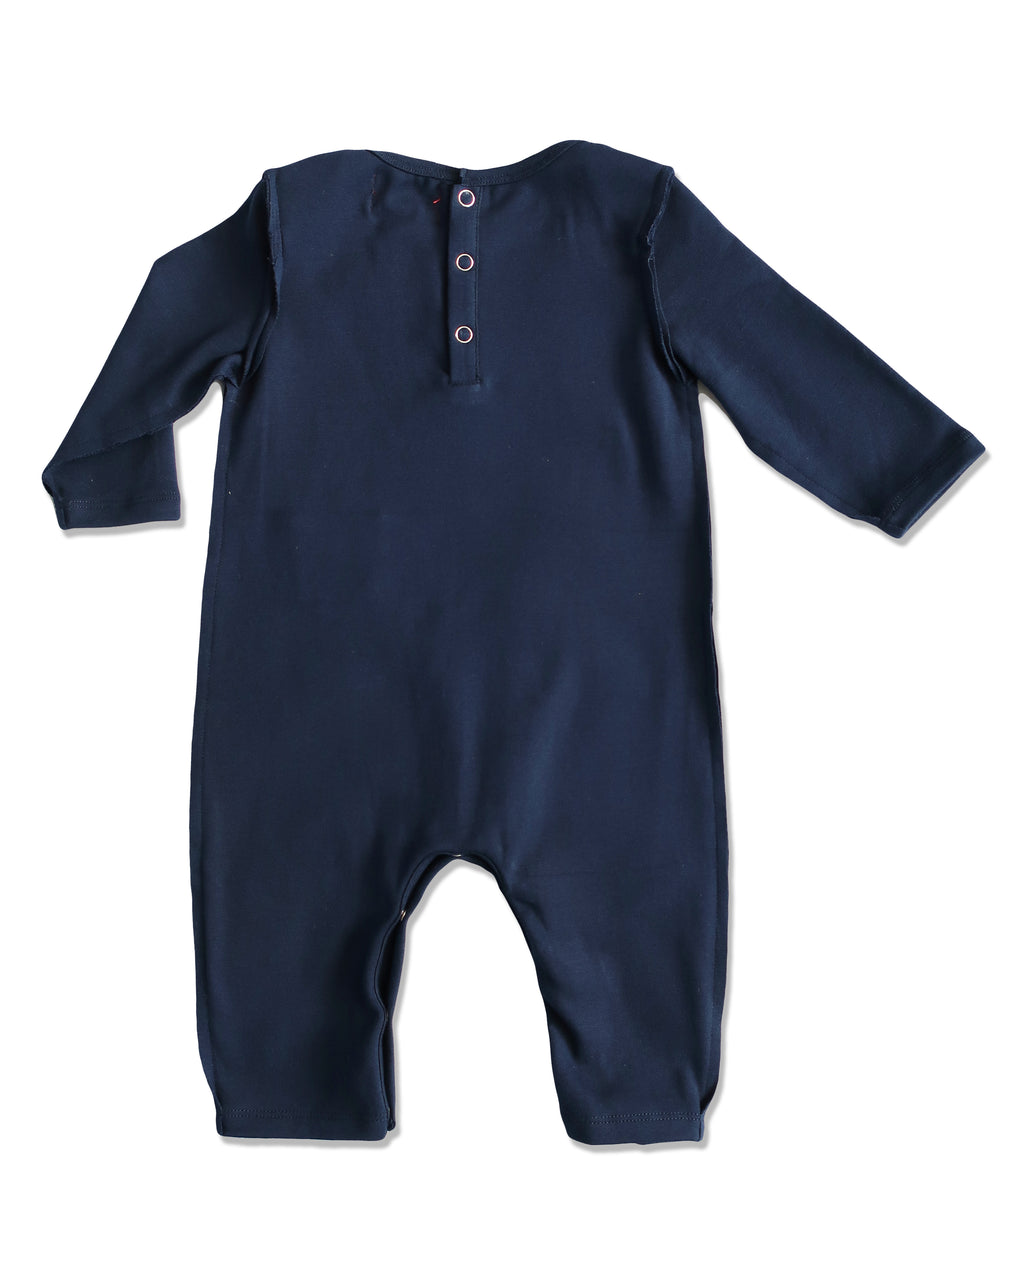 back image of baby boys navy cotton romper with raw edging and envelope neck with snaps